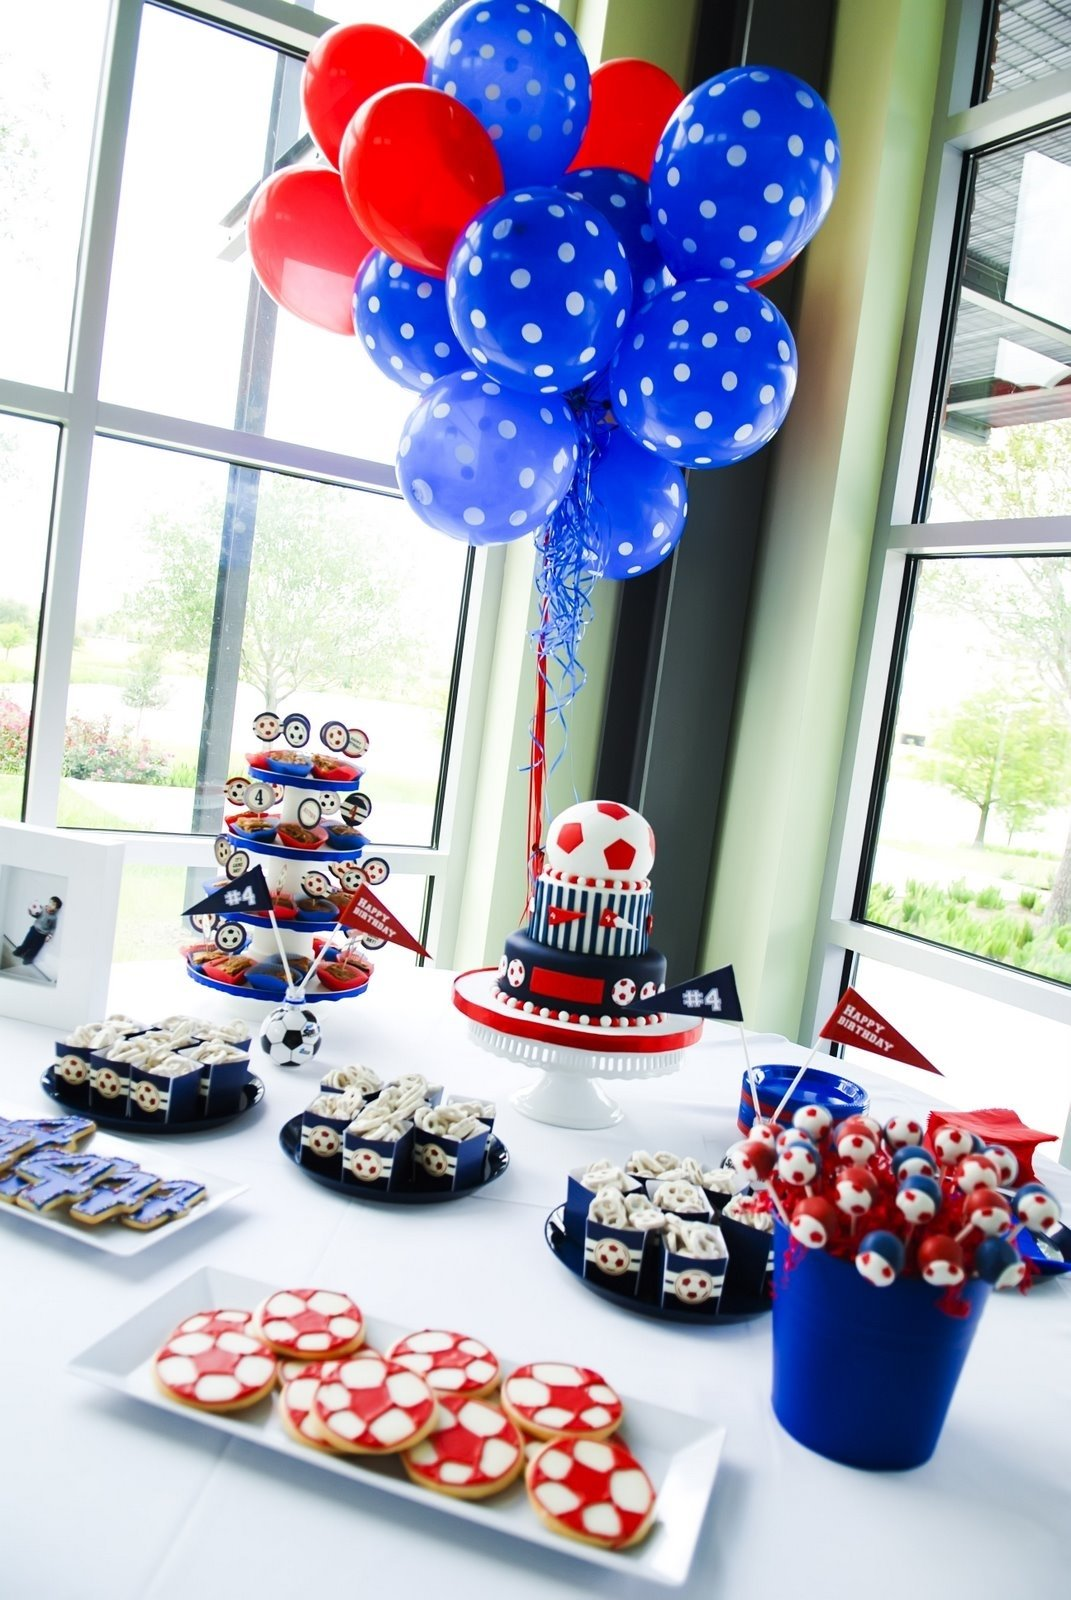 10 Cute Great Birthday Party Ideas For Adults diy project 15 great boys birthday party ideas part 2 style 1 2021